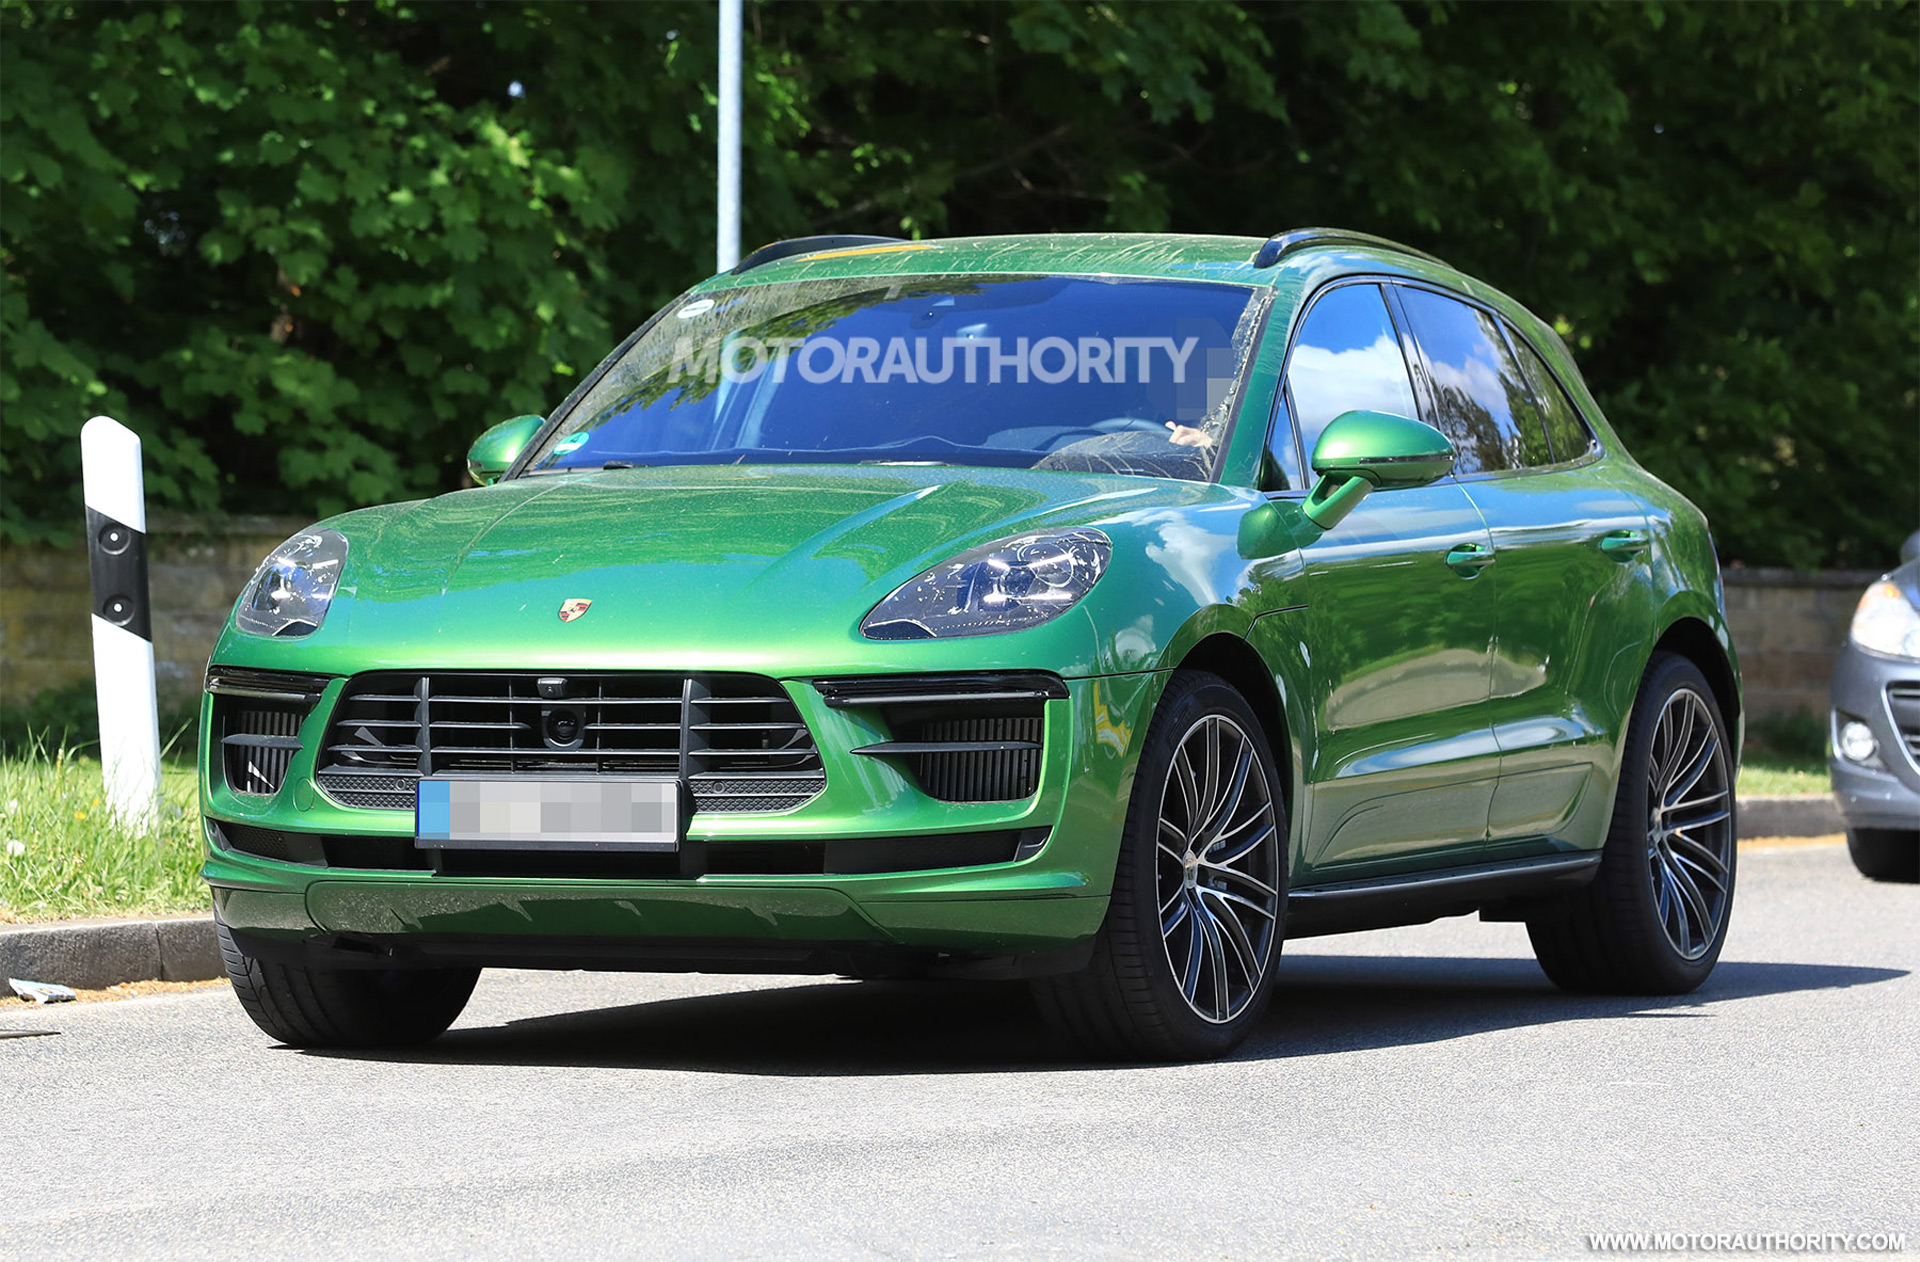 2020 Porsche Macan S, GTS, Interior, Hybrid >> 2019 Porsche Macan Spy Shots And Video